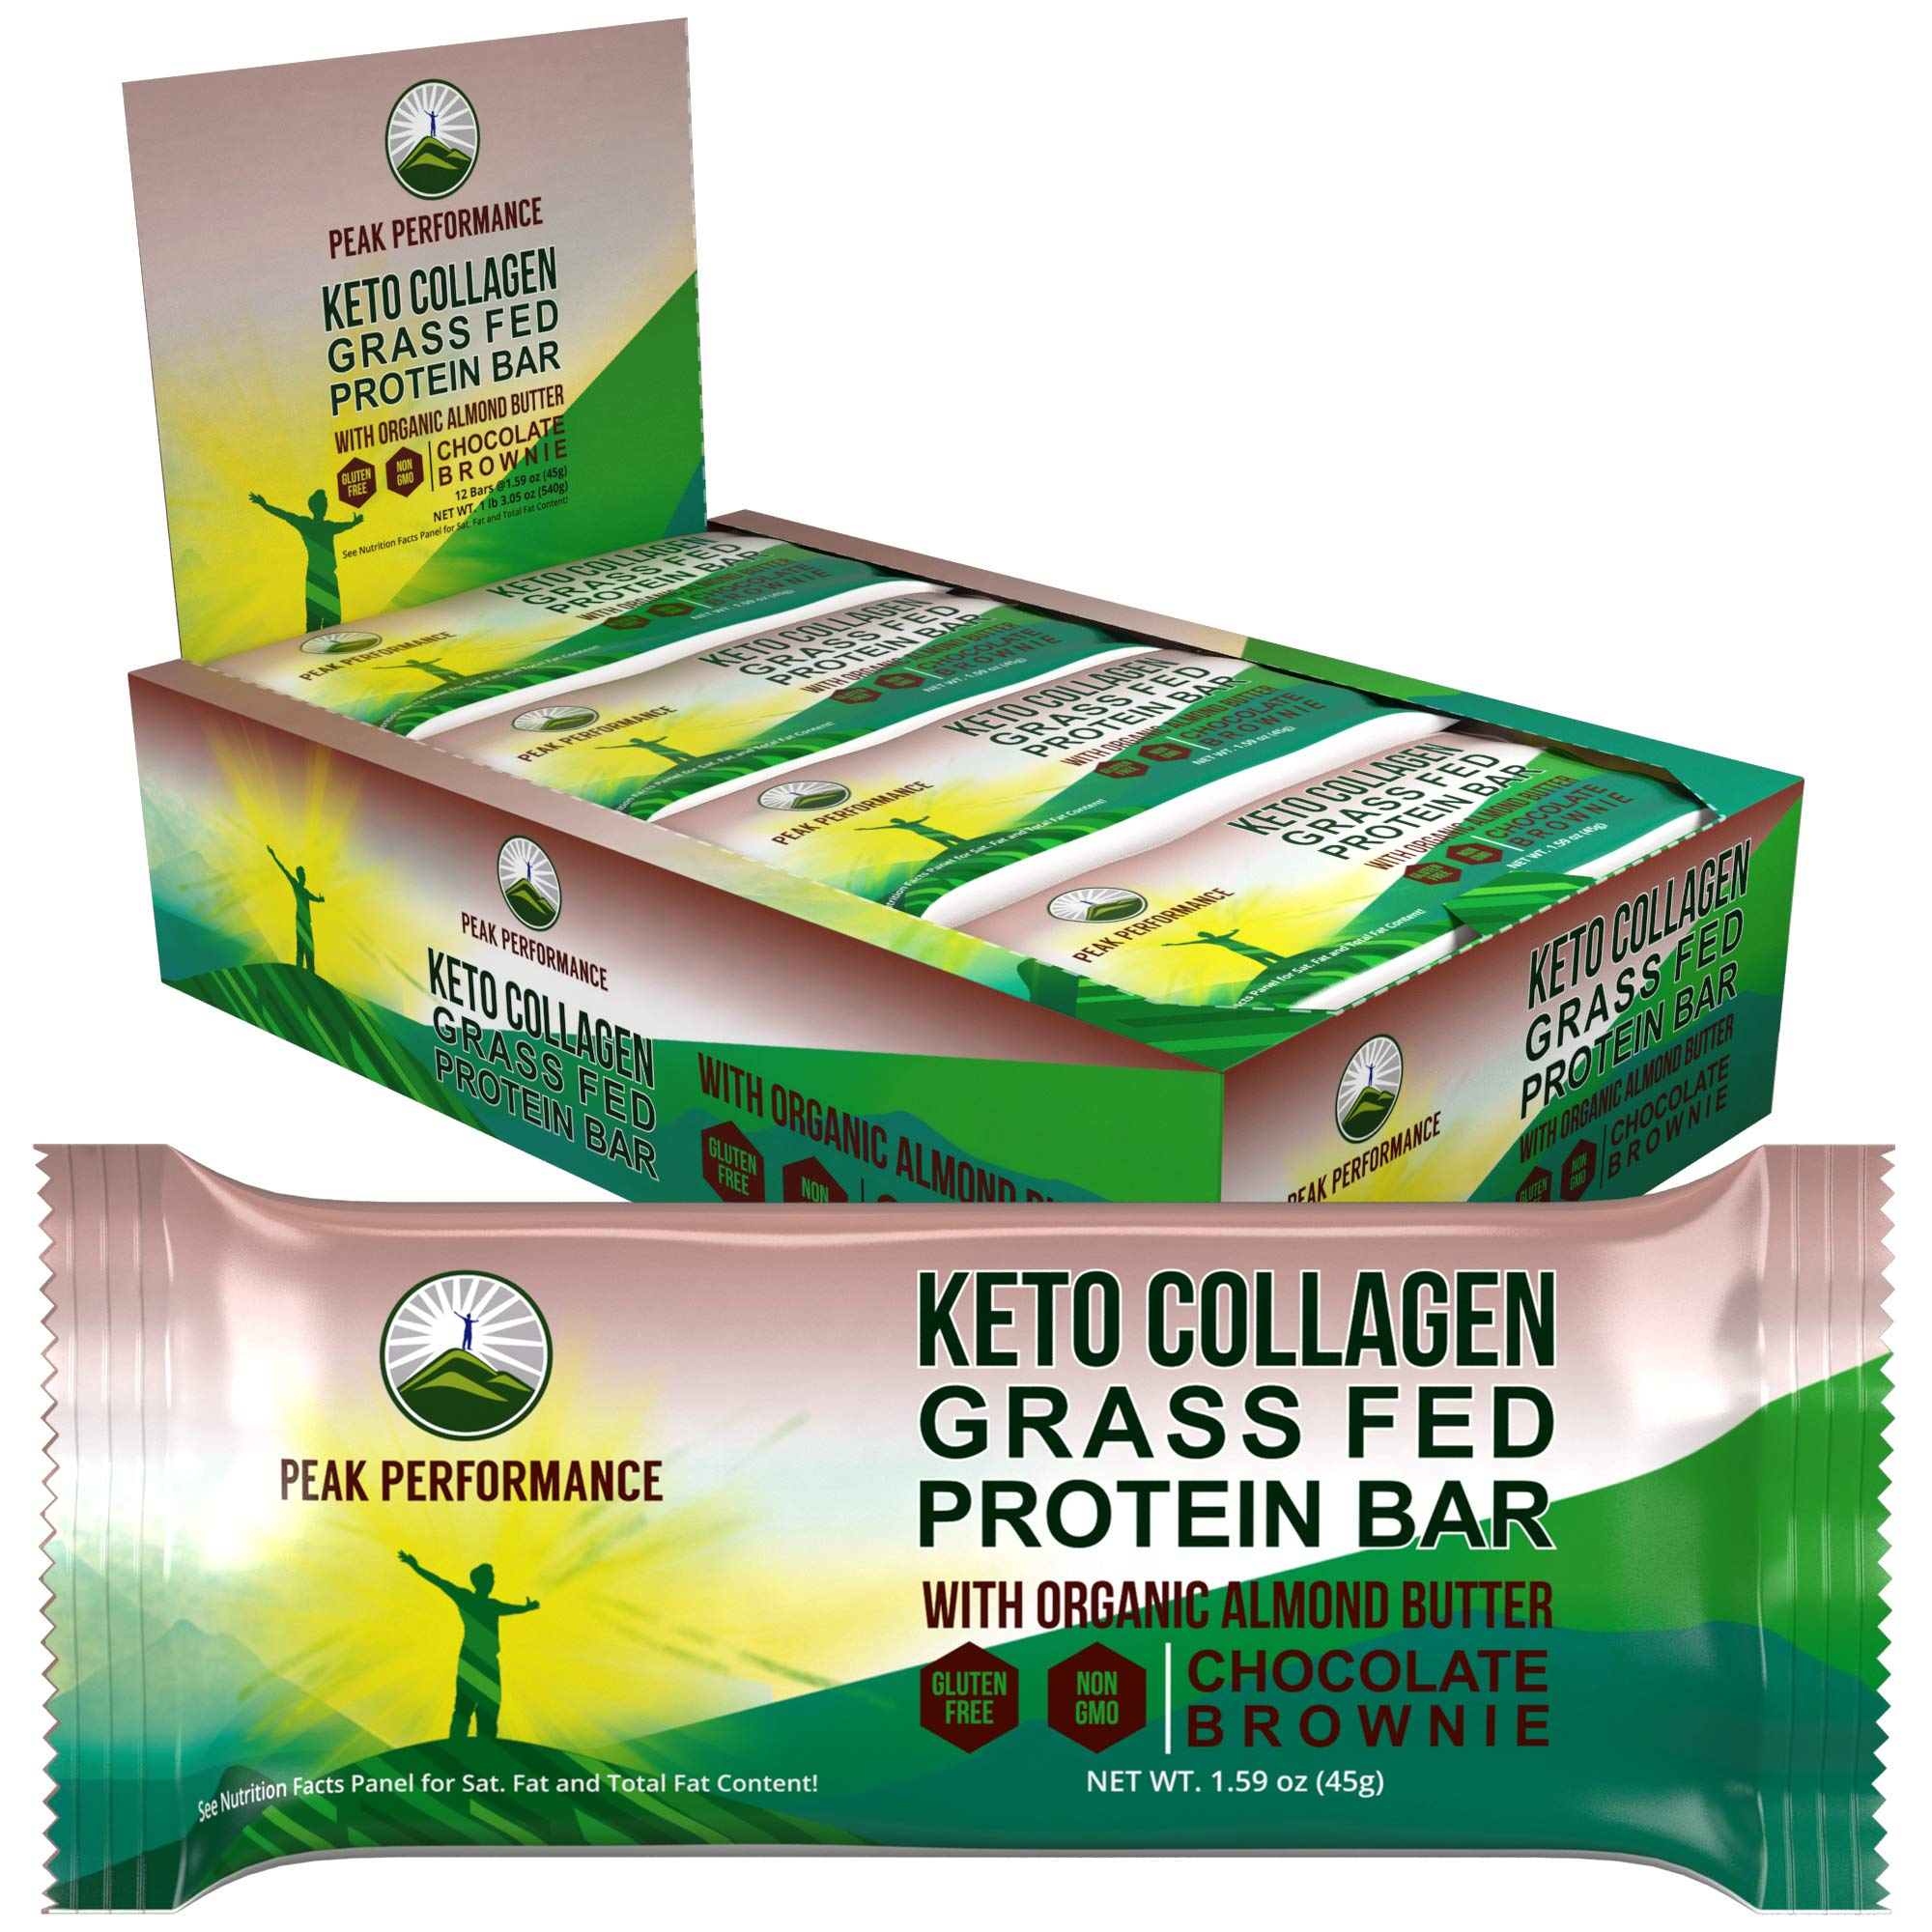 Keto Bars - Grass Fed Collagen Keto Protein Bars with Organic Almond Butter by Peak Performance (12 Pack). Delicious, Gluten Free, No Added Sugar, Perfect Snack for Paleo + Keto Chocolate Brownie Bar by Peak Performance